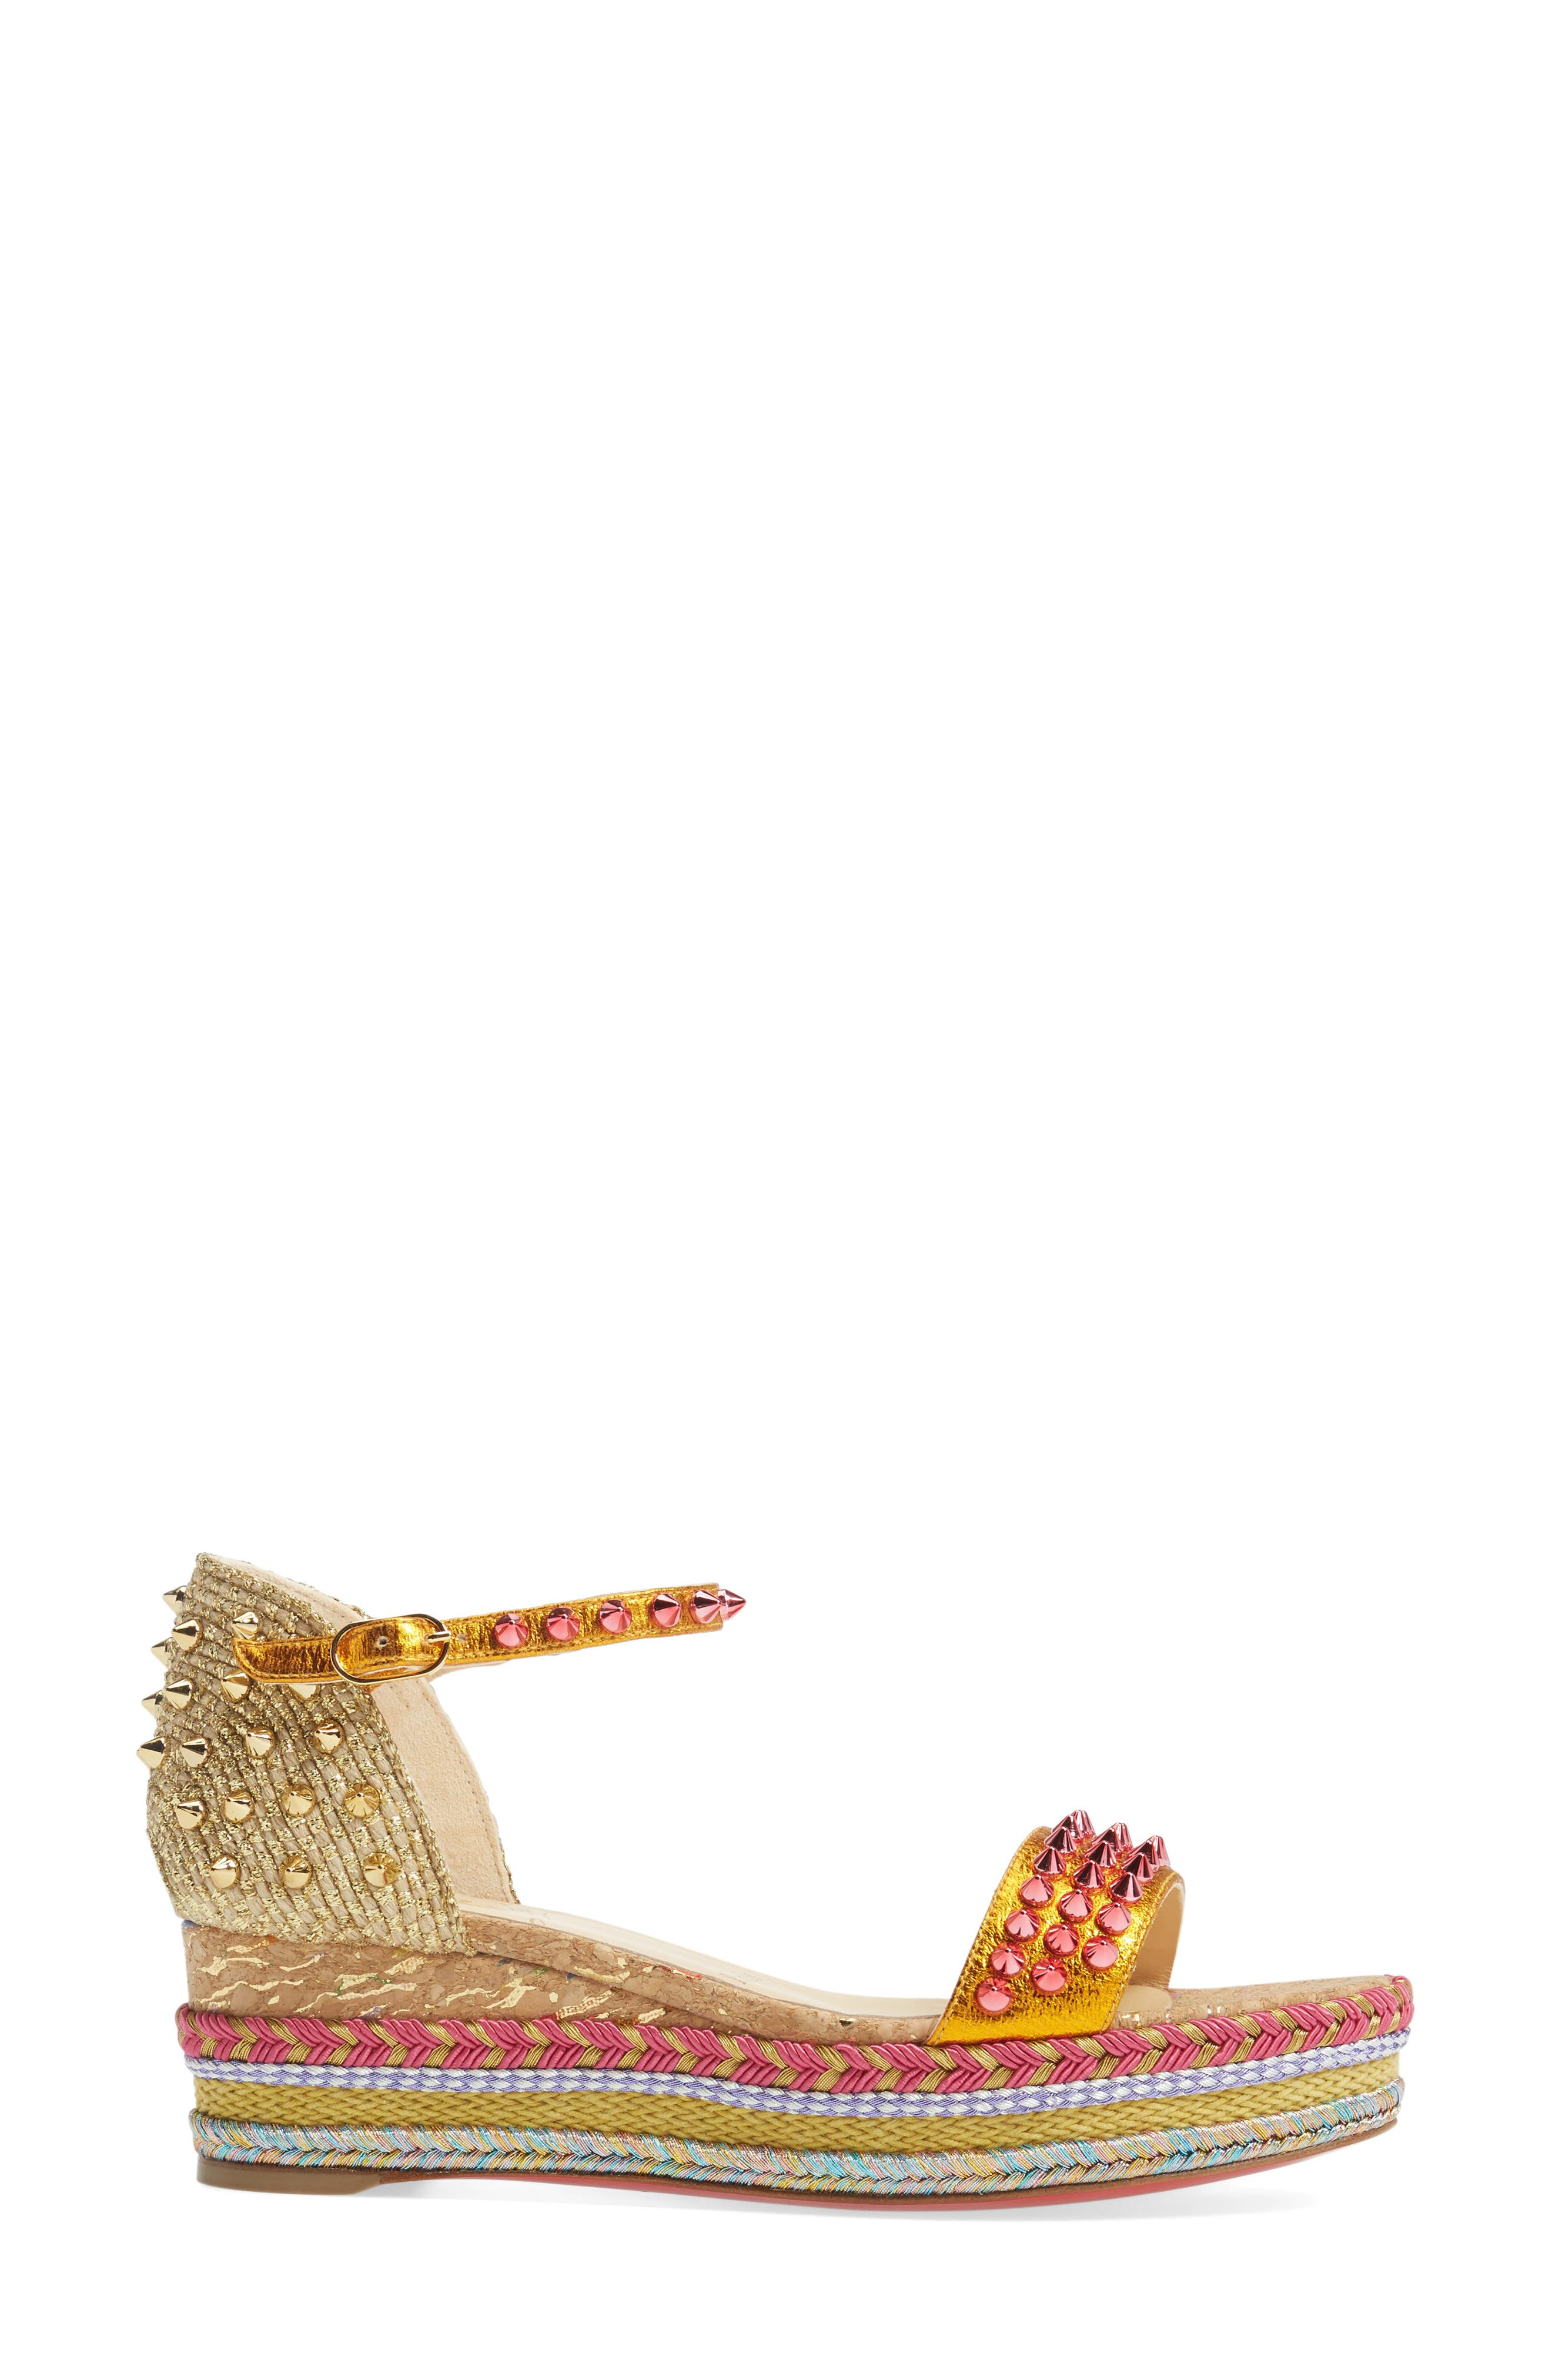 Madmonica Espadrille Platform Sandal,                             Alternate thumbnail 4, color,                             Orange Multi Leather